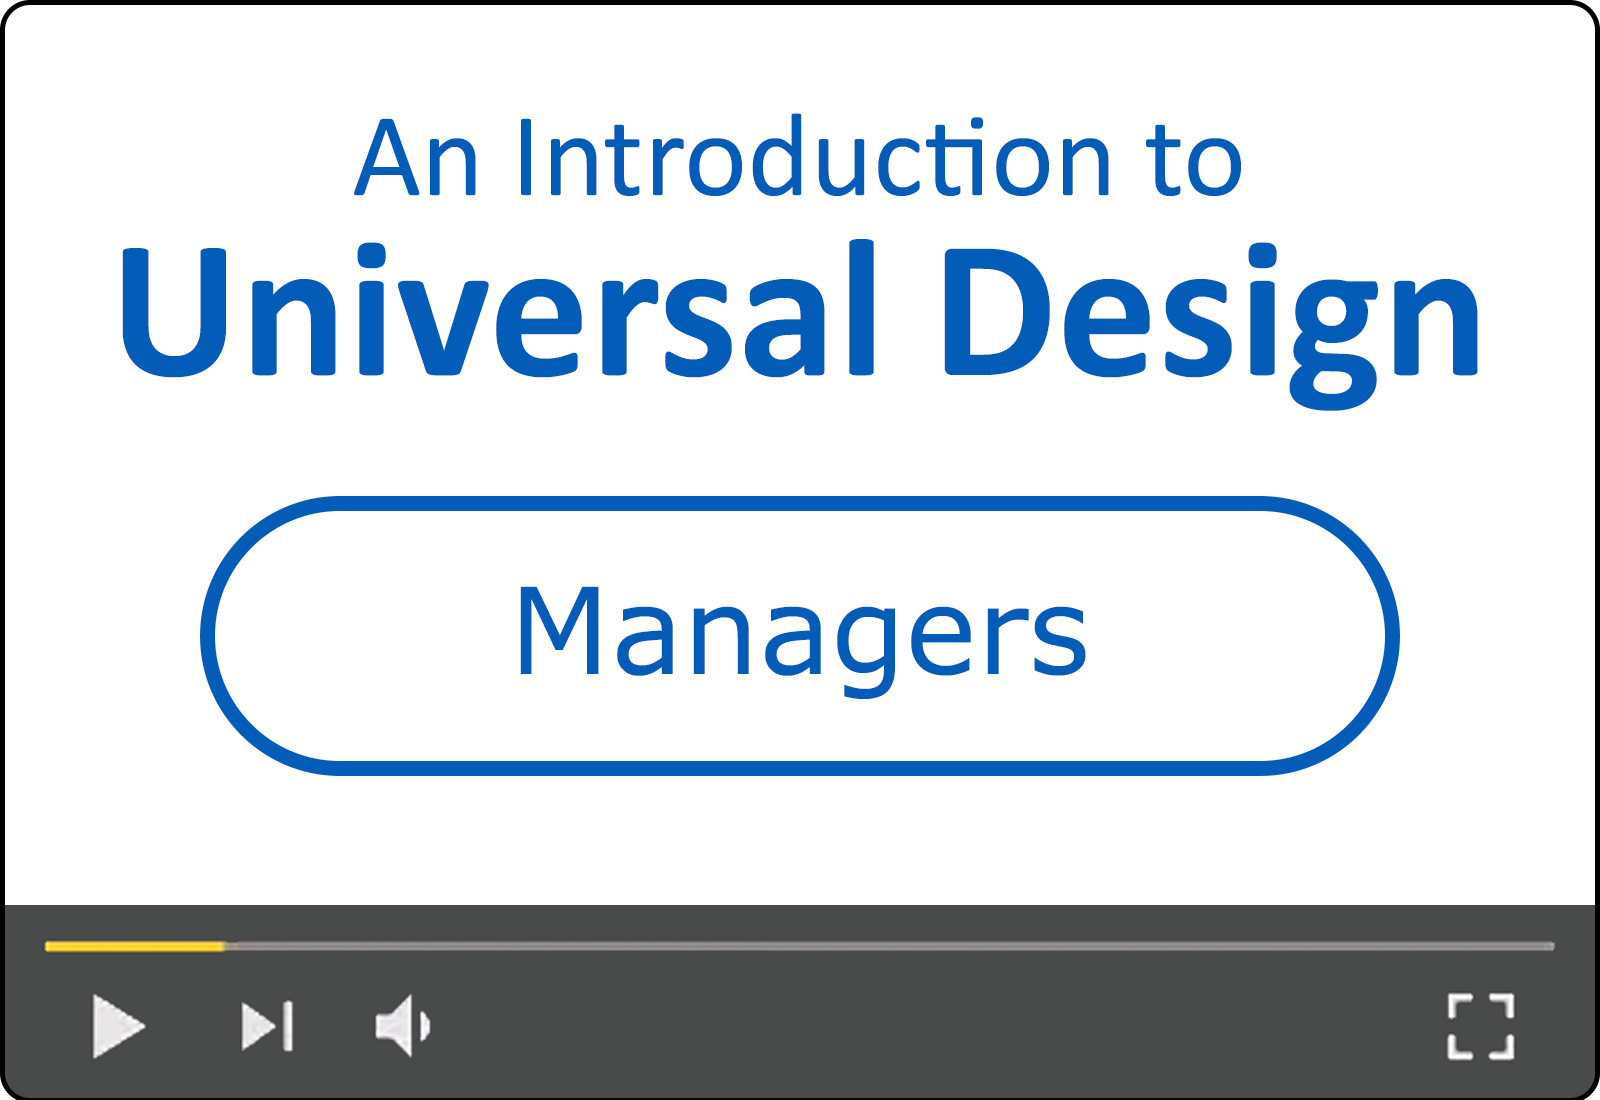 An Introduction to Universal Design for Managers